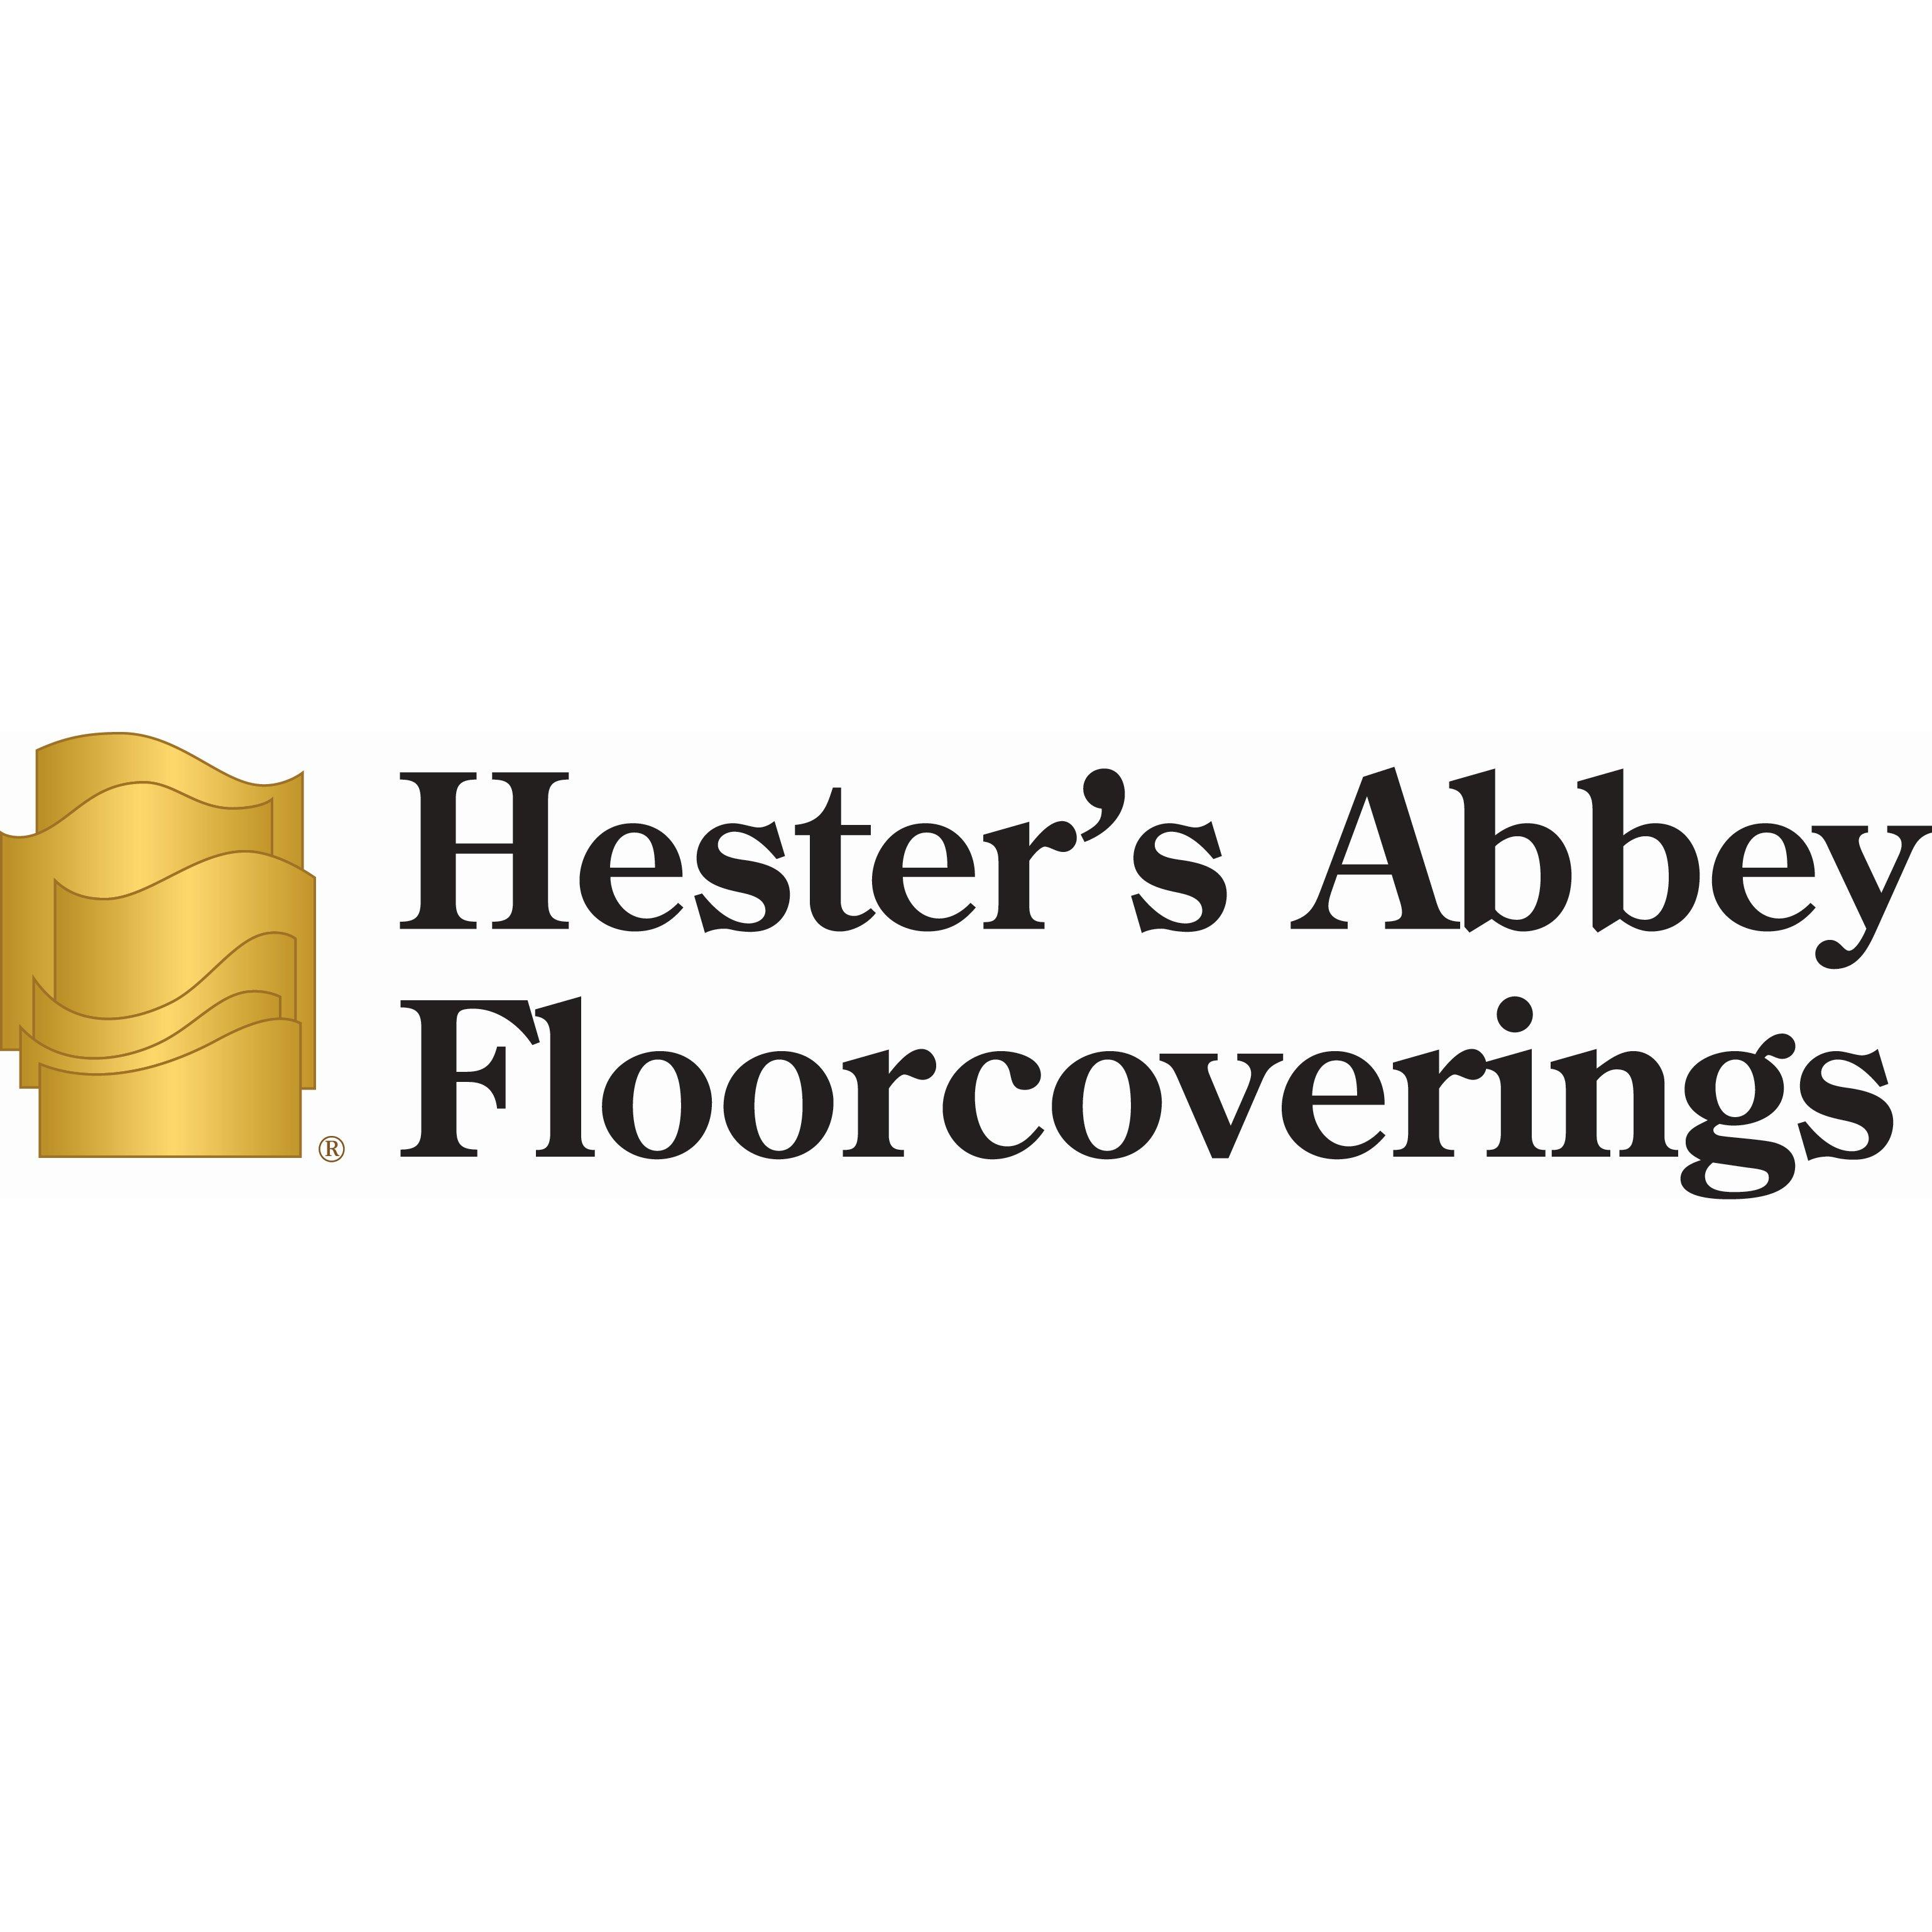 Hester's Abbey Floorcoverings image 10